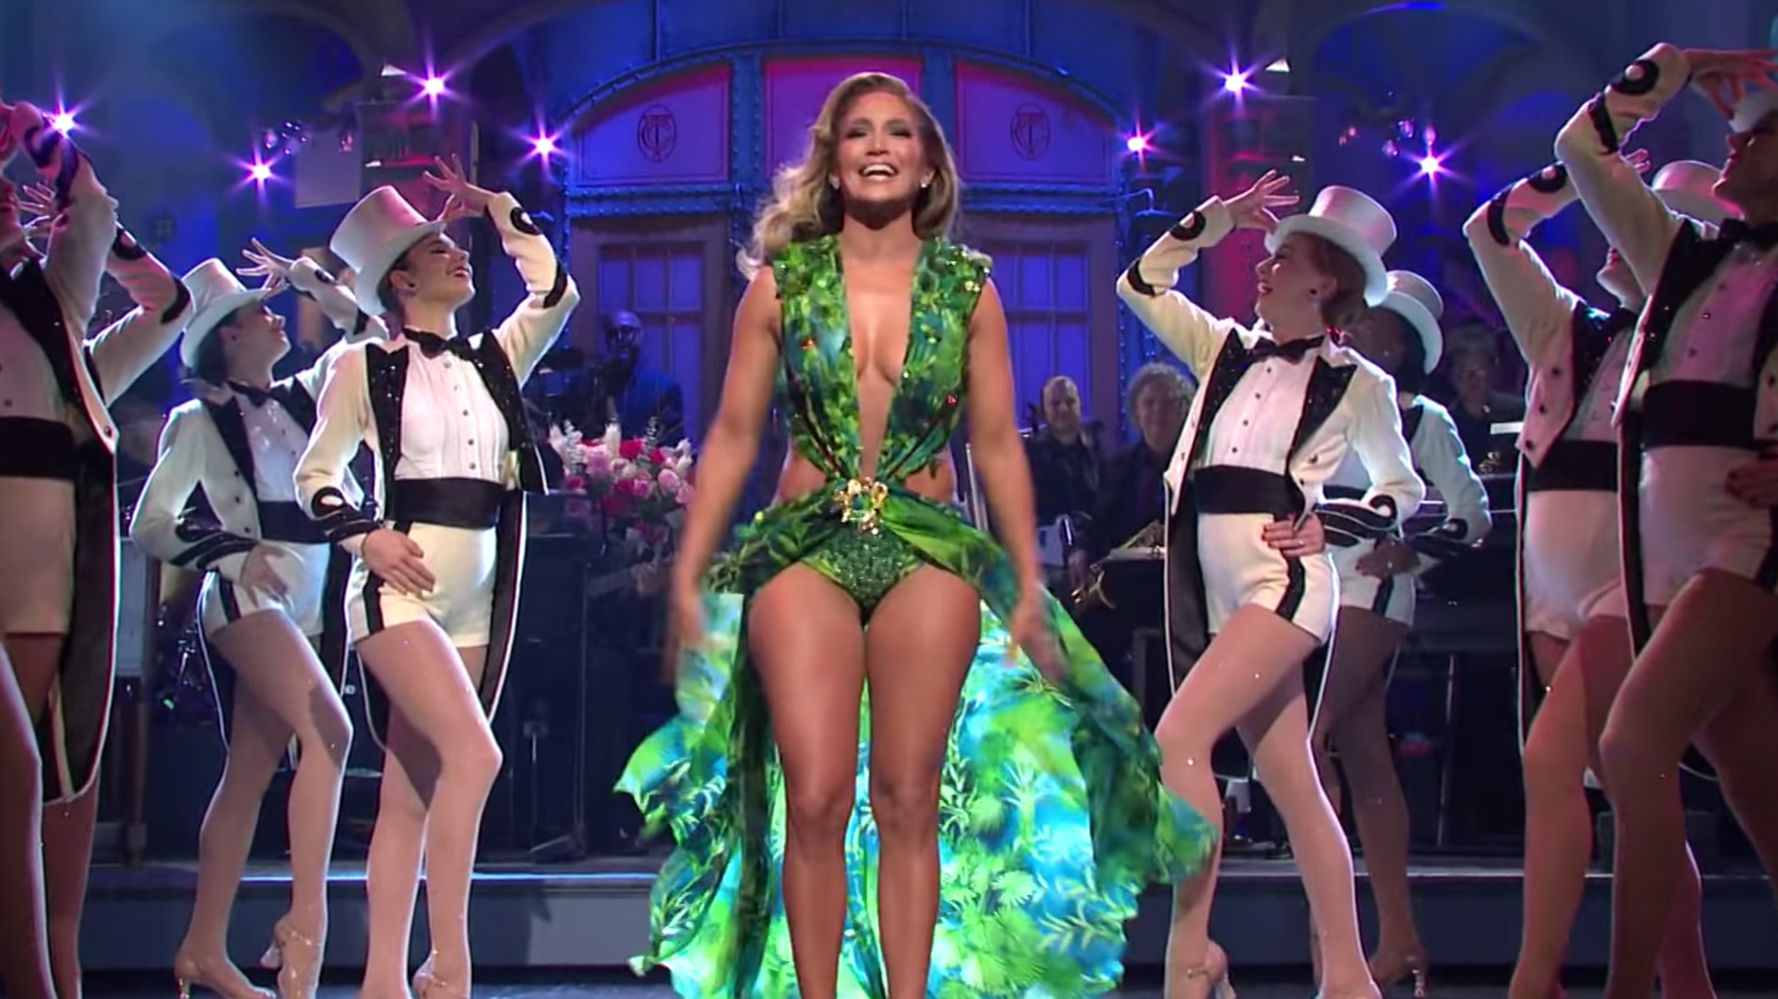 Jennifer Lopez Brings Back That Iconic Green Dress, Heads Explode On 'SNL'